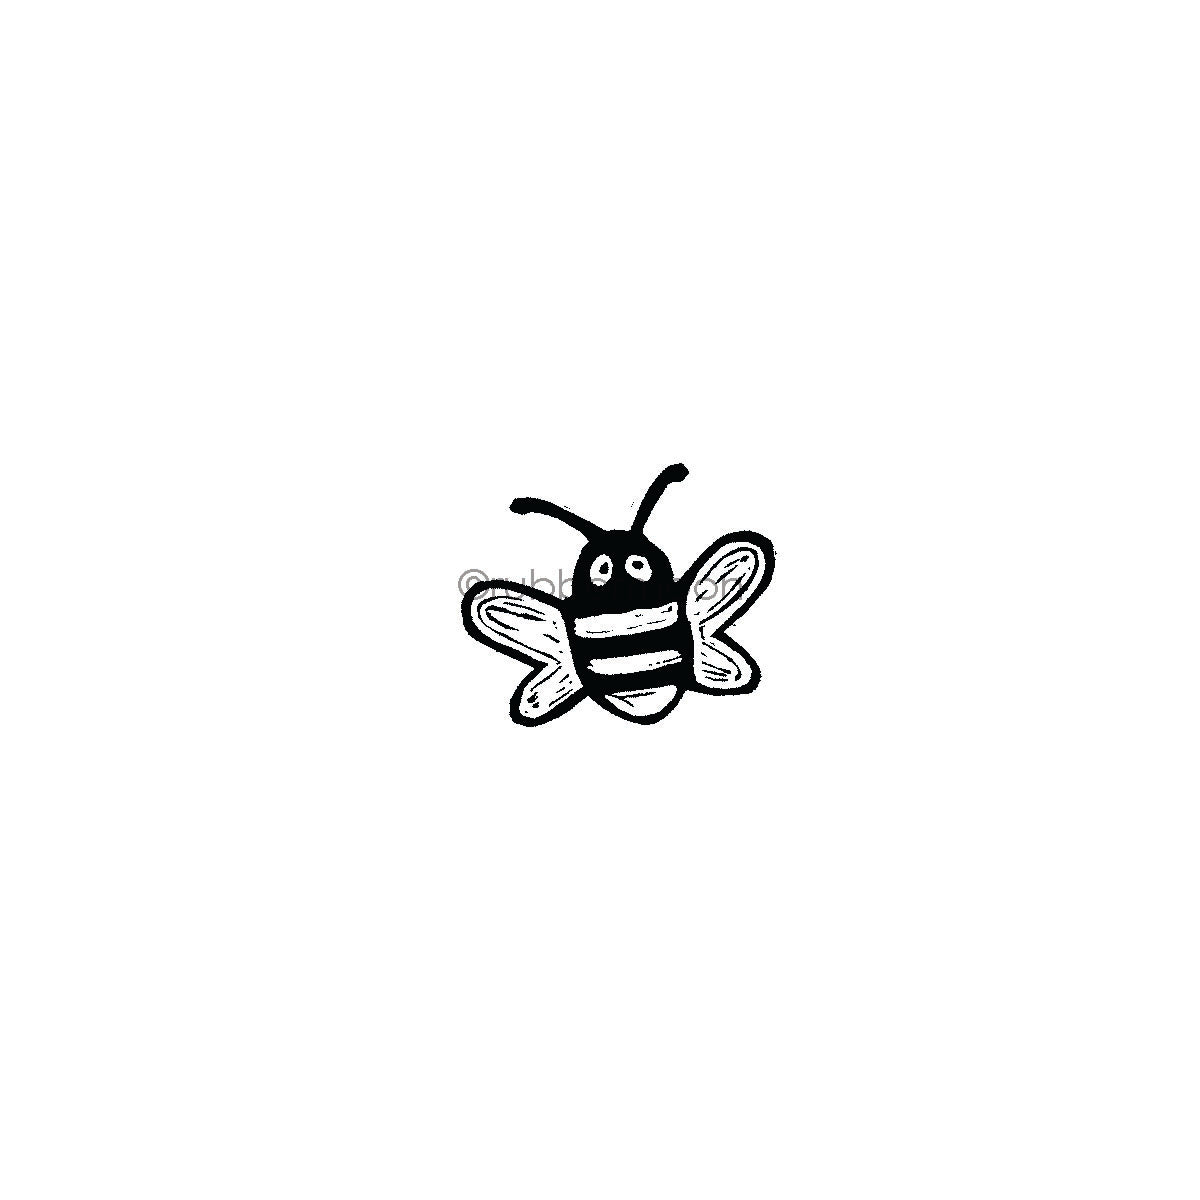 Donna Gray | DG7496D - Buzzy Bee - Rubber Art Stamp